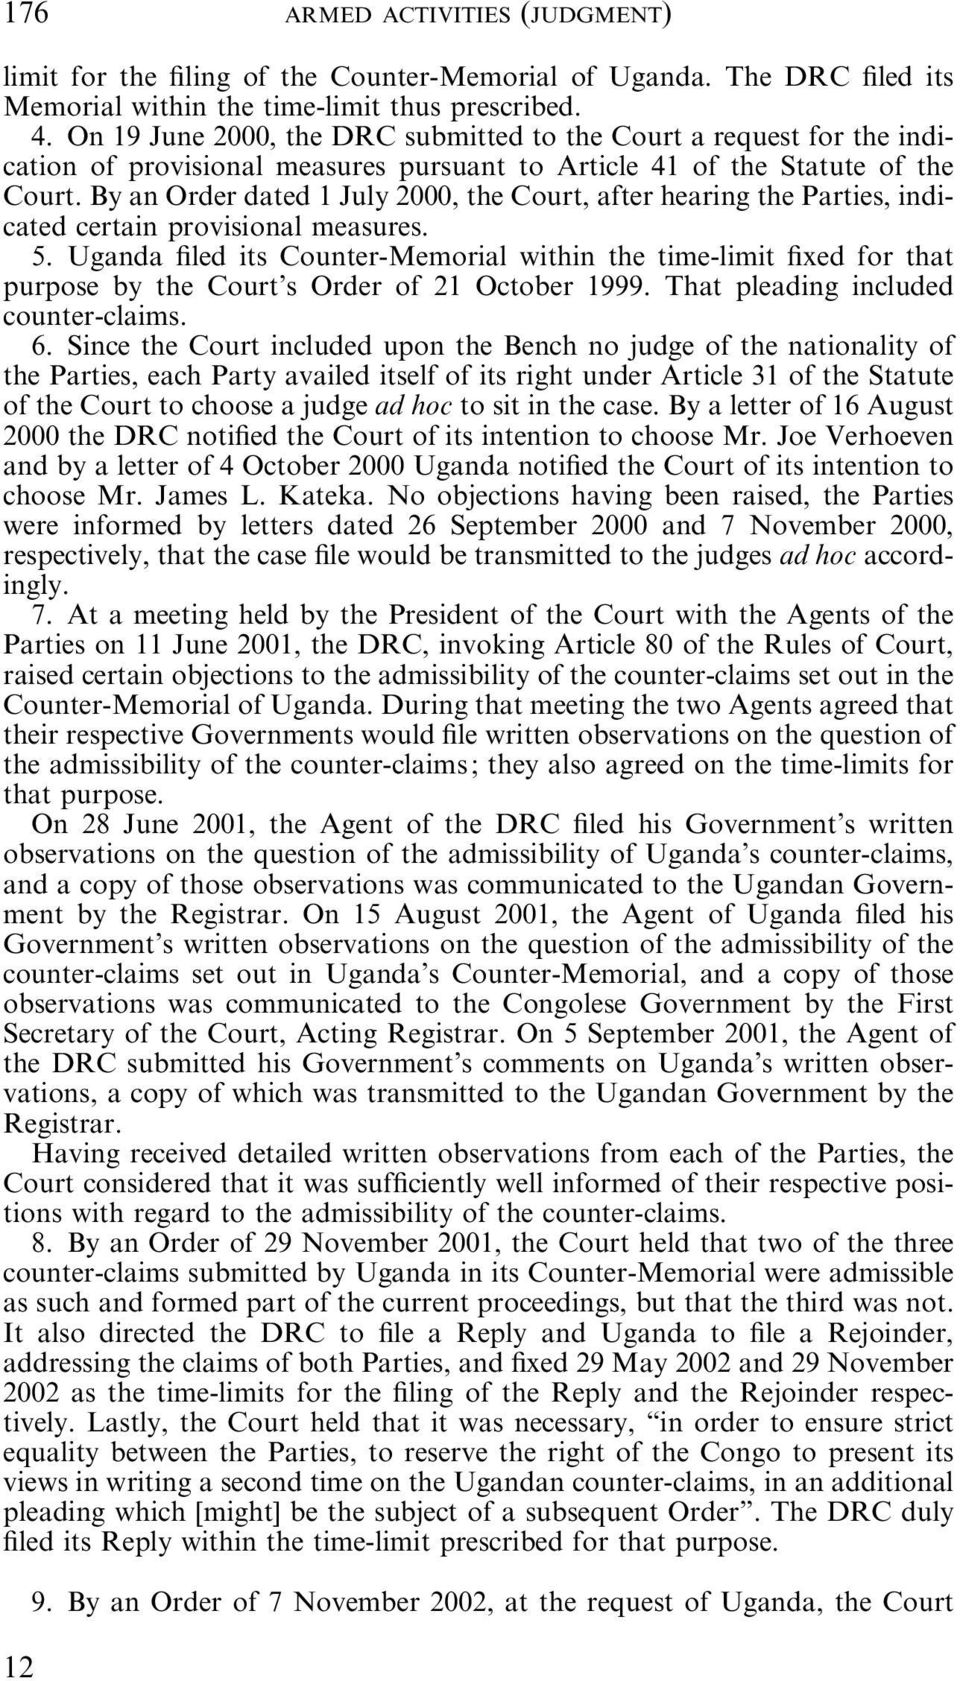 By an Order dated 1 July 2000, the Court, after hearing the Parties, indicated certain provisional measures. 5.